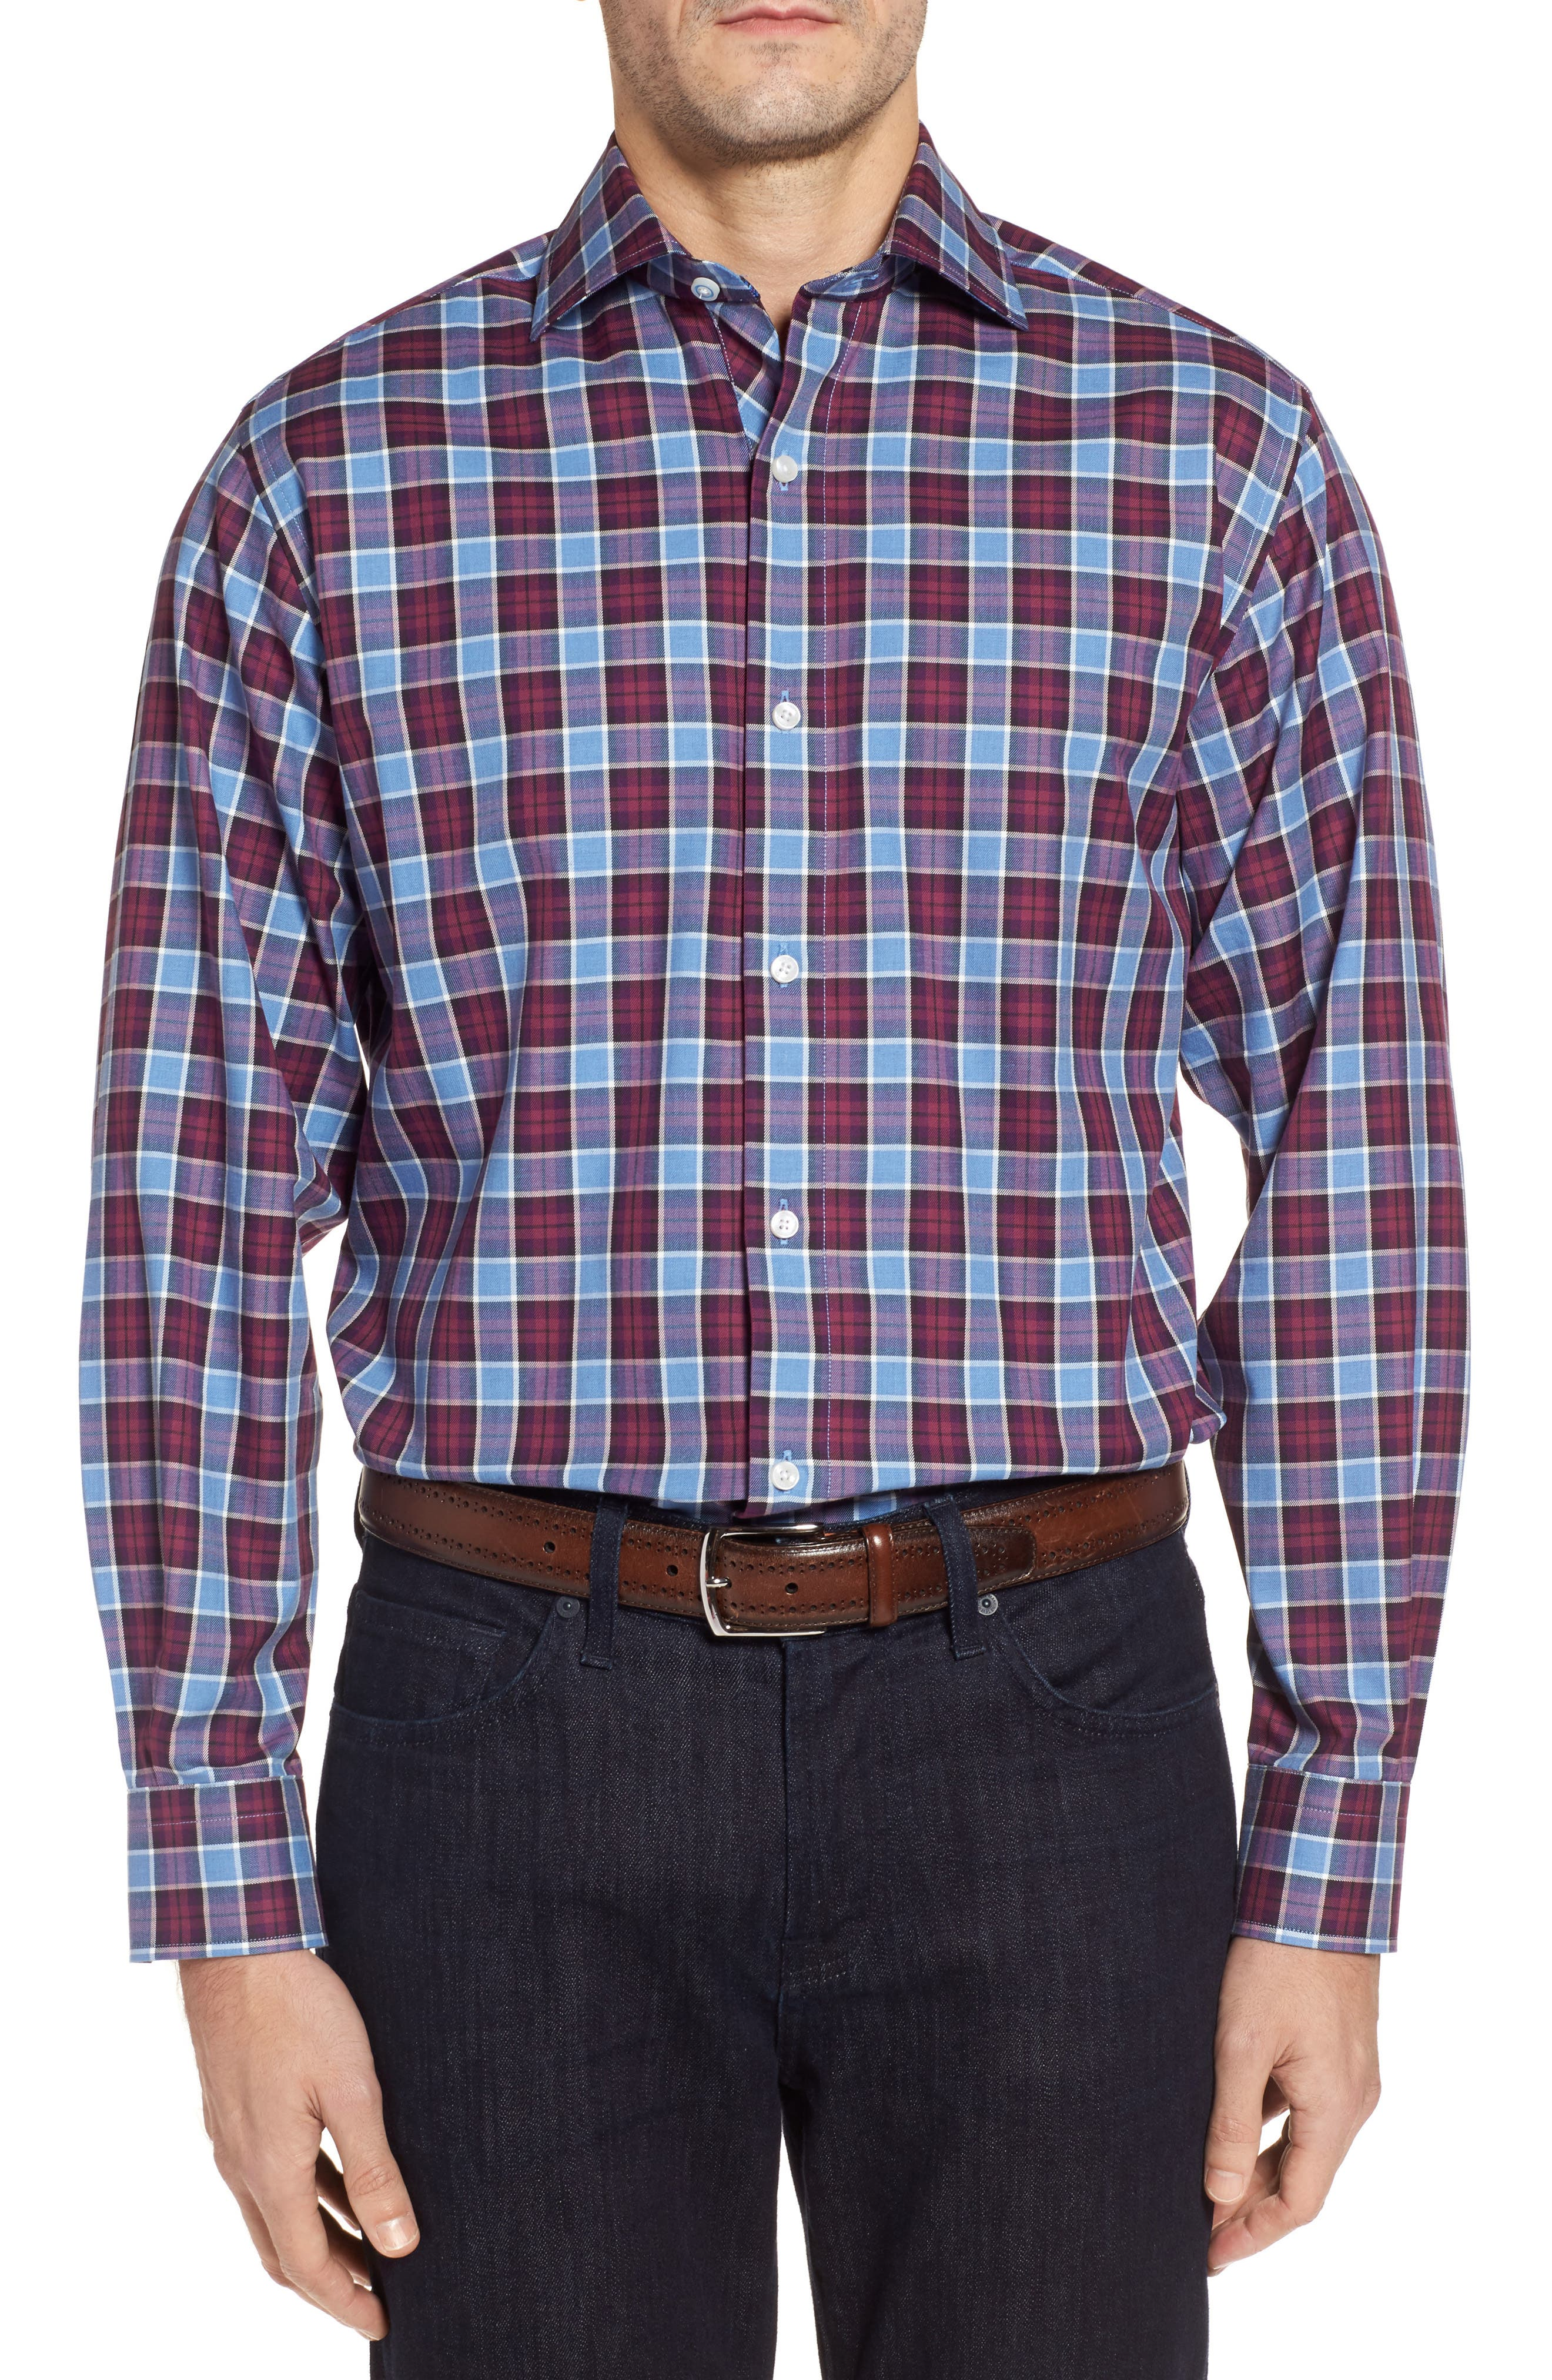 Main Image - TailorByrd Campti Regular Fit Plaid Sport Shirt